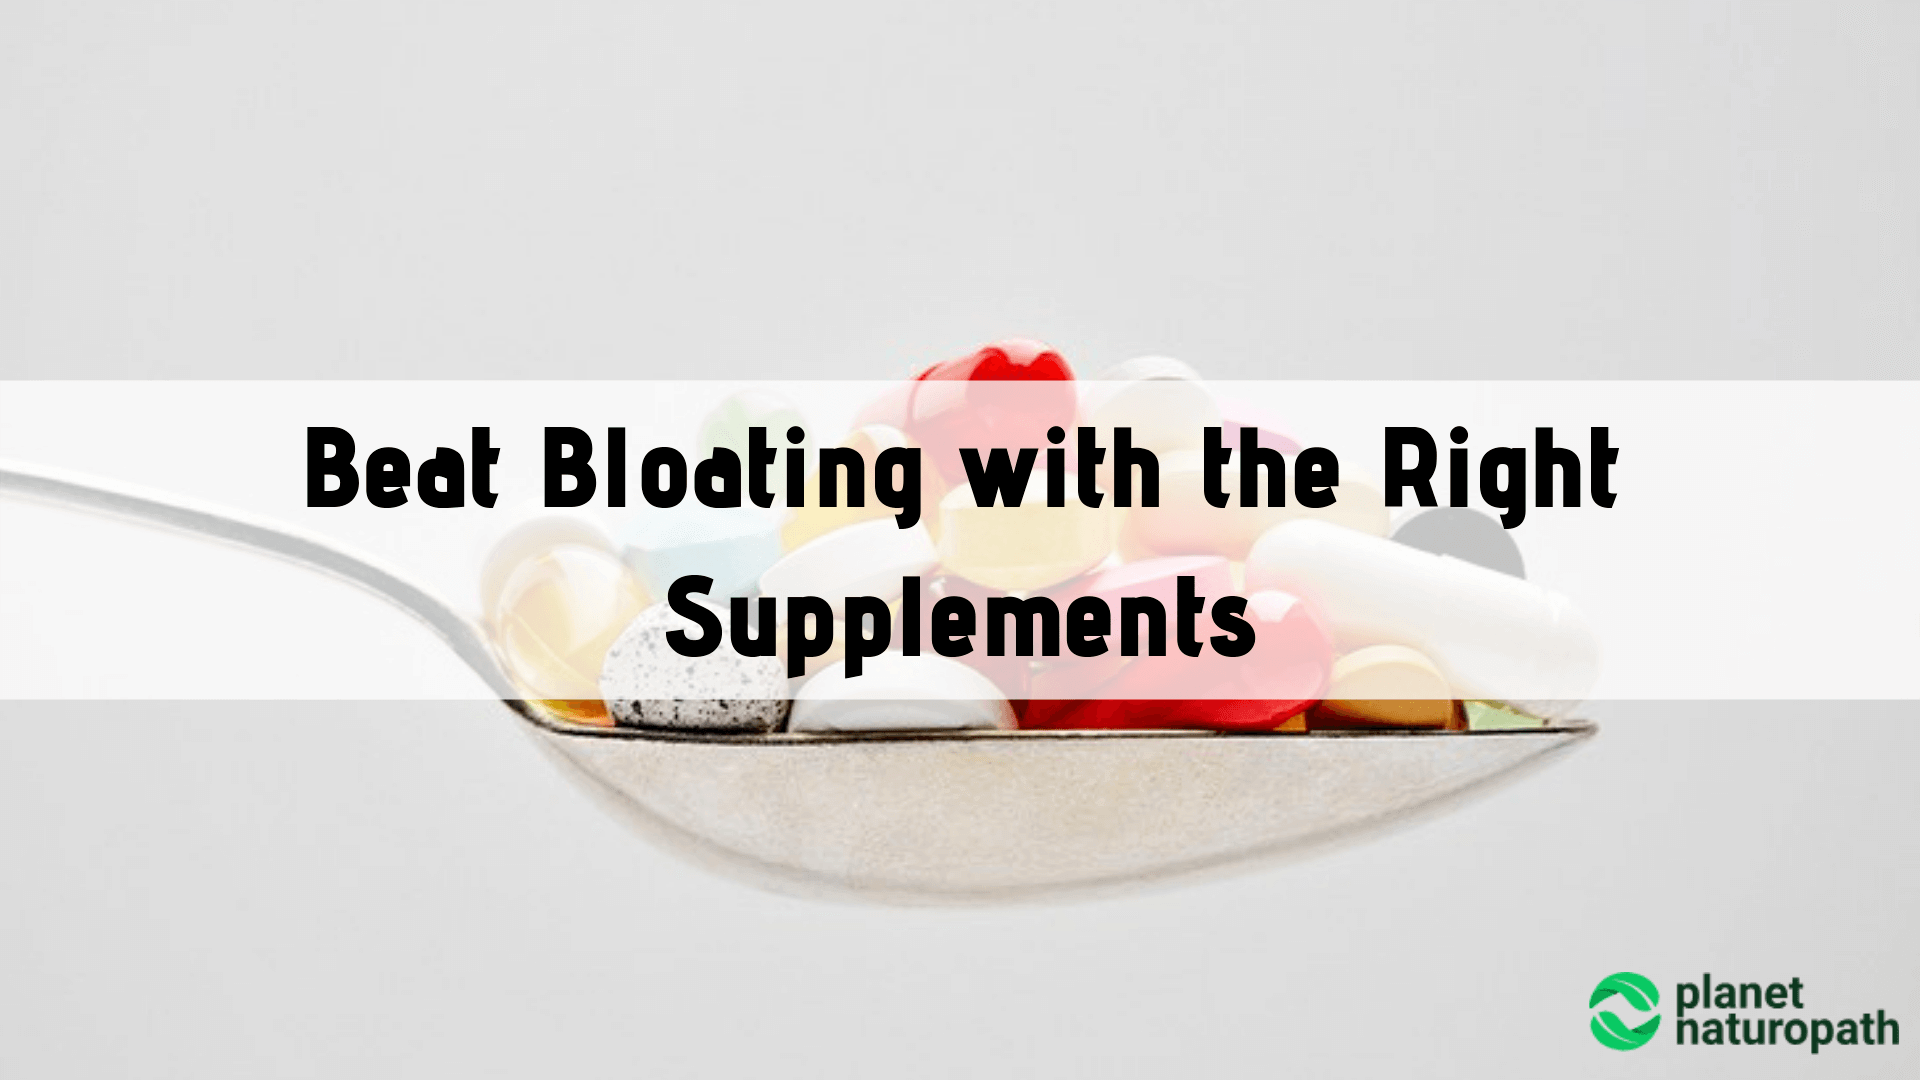 Beat-Bloating-with-the-Right-Supplements